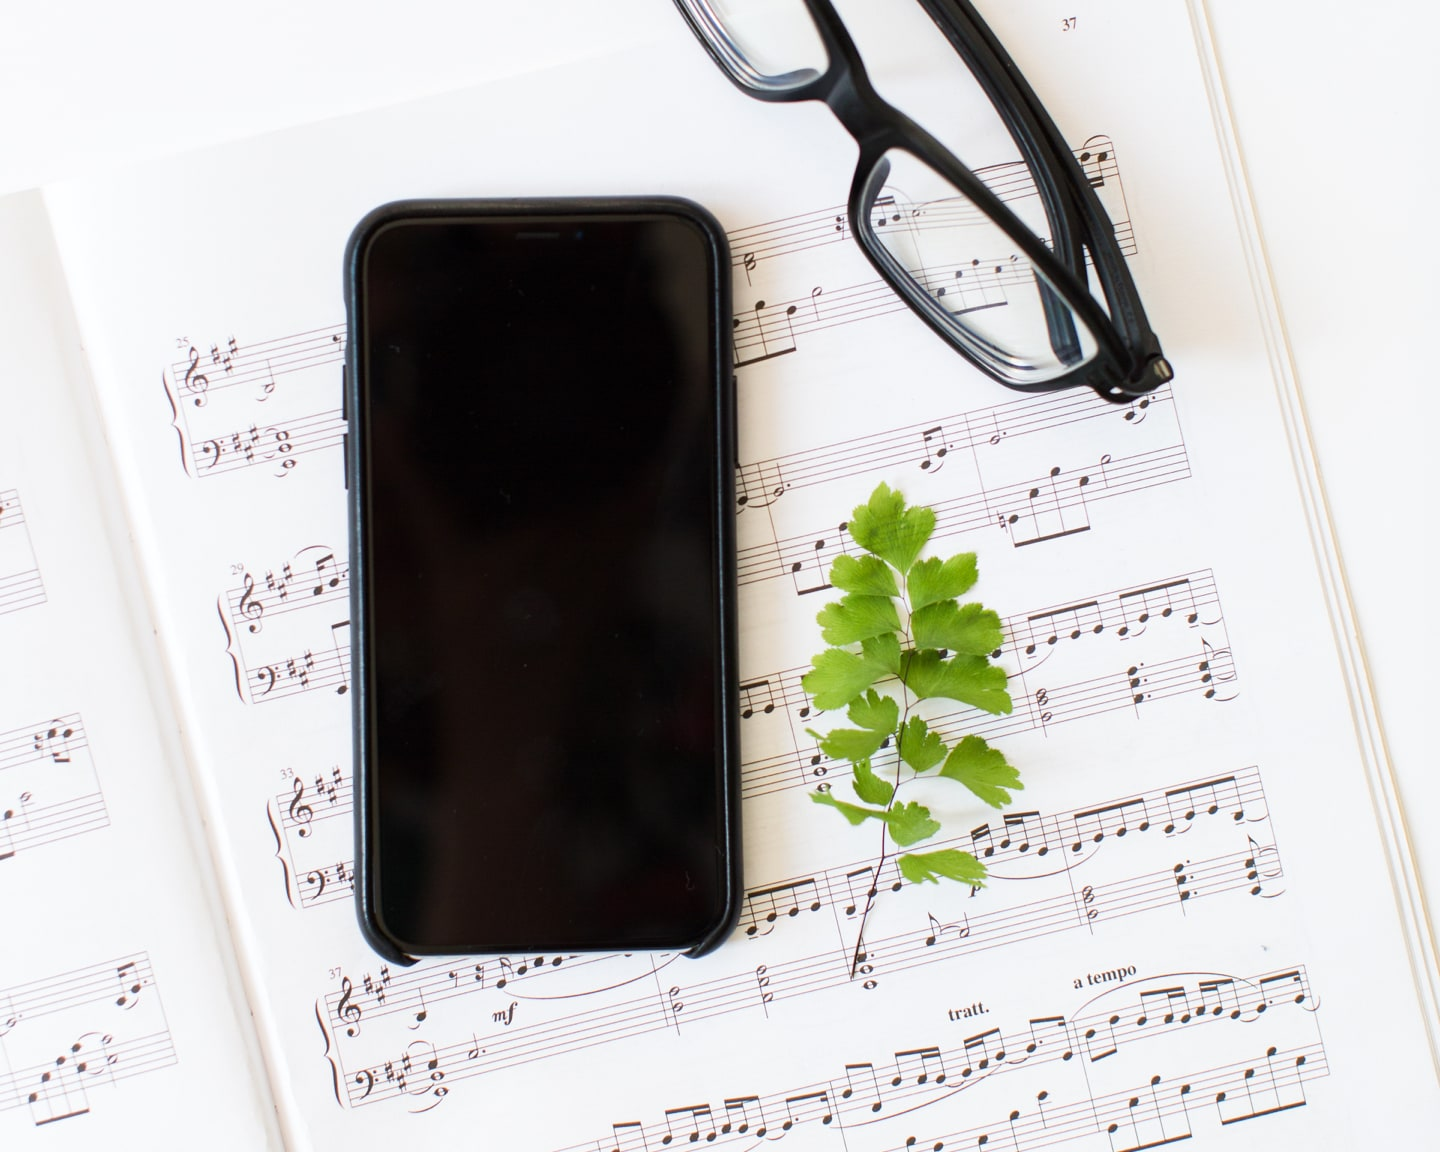 Flat lay of Jack Watkins iPhone, sheet music, glasses and plants